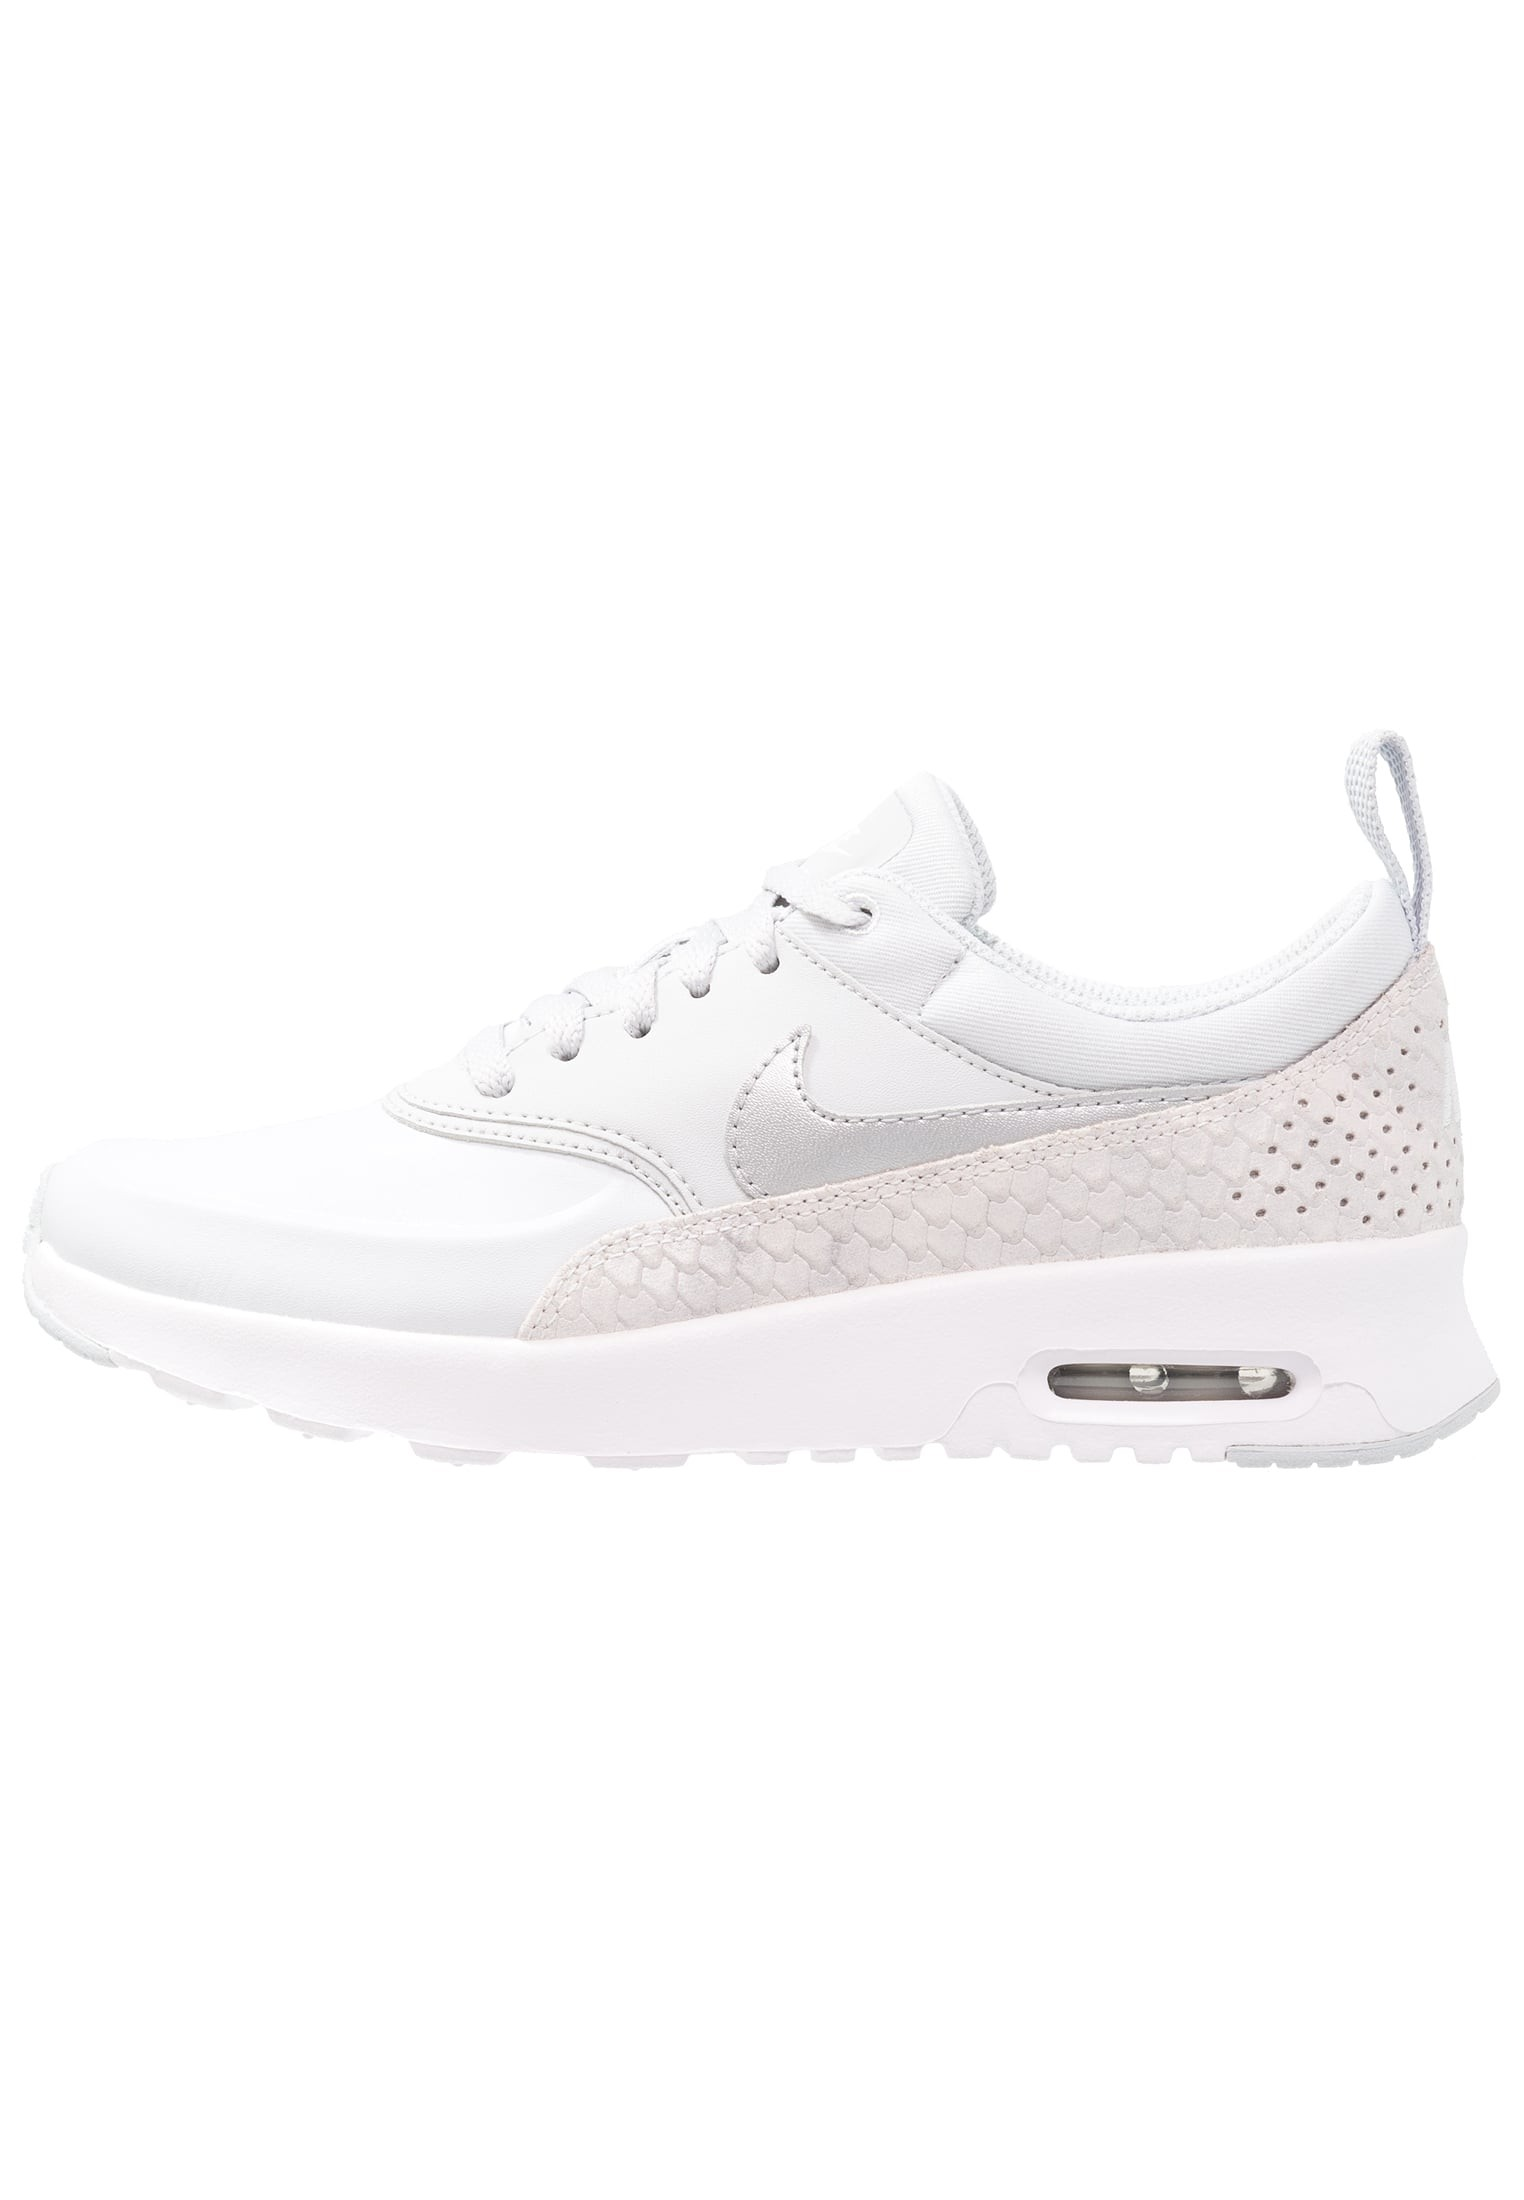 save off 09de7 86973 ... musée des impressionnismes giverny 92daf6 2ad13 17186  inexpensive  boutique femme nike nike nike air max thea 335370 f71fa ae555